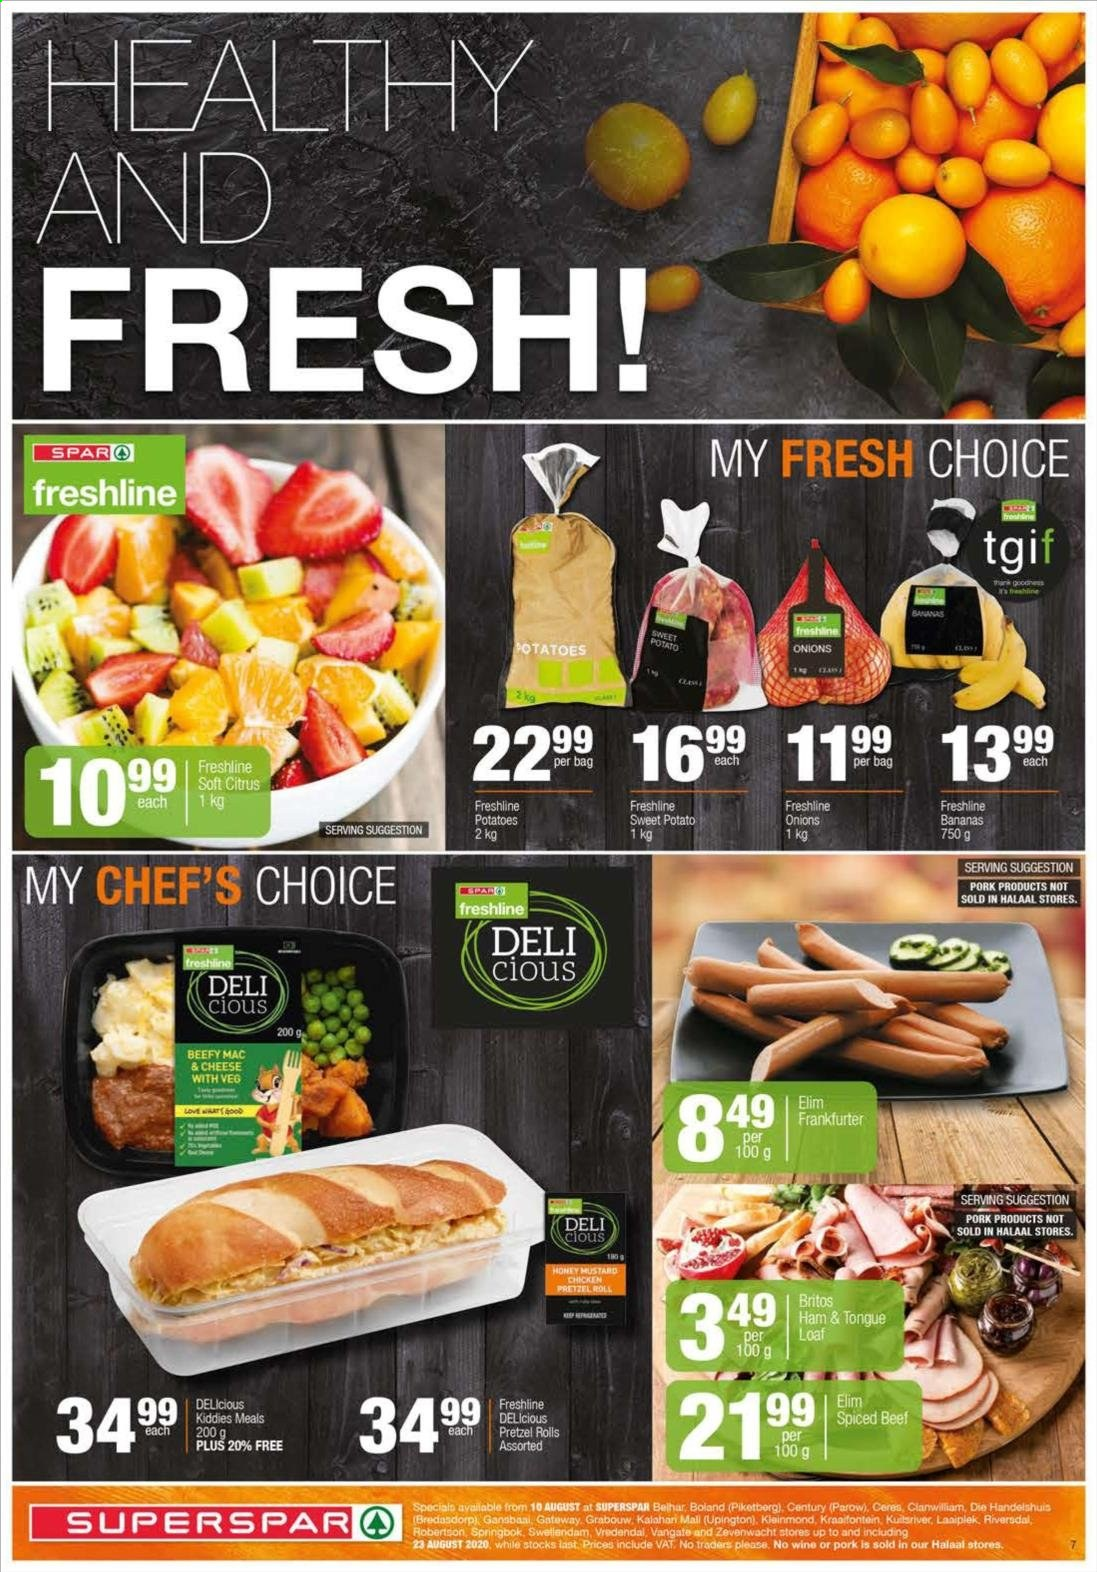 SPAR catalogue  - 08.10.2020 - 08.23.2020. Page 7.